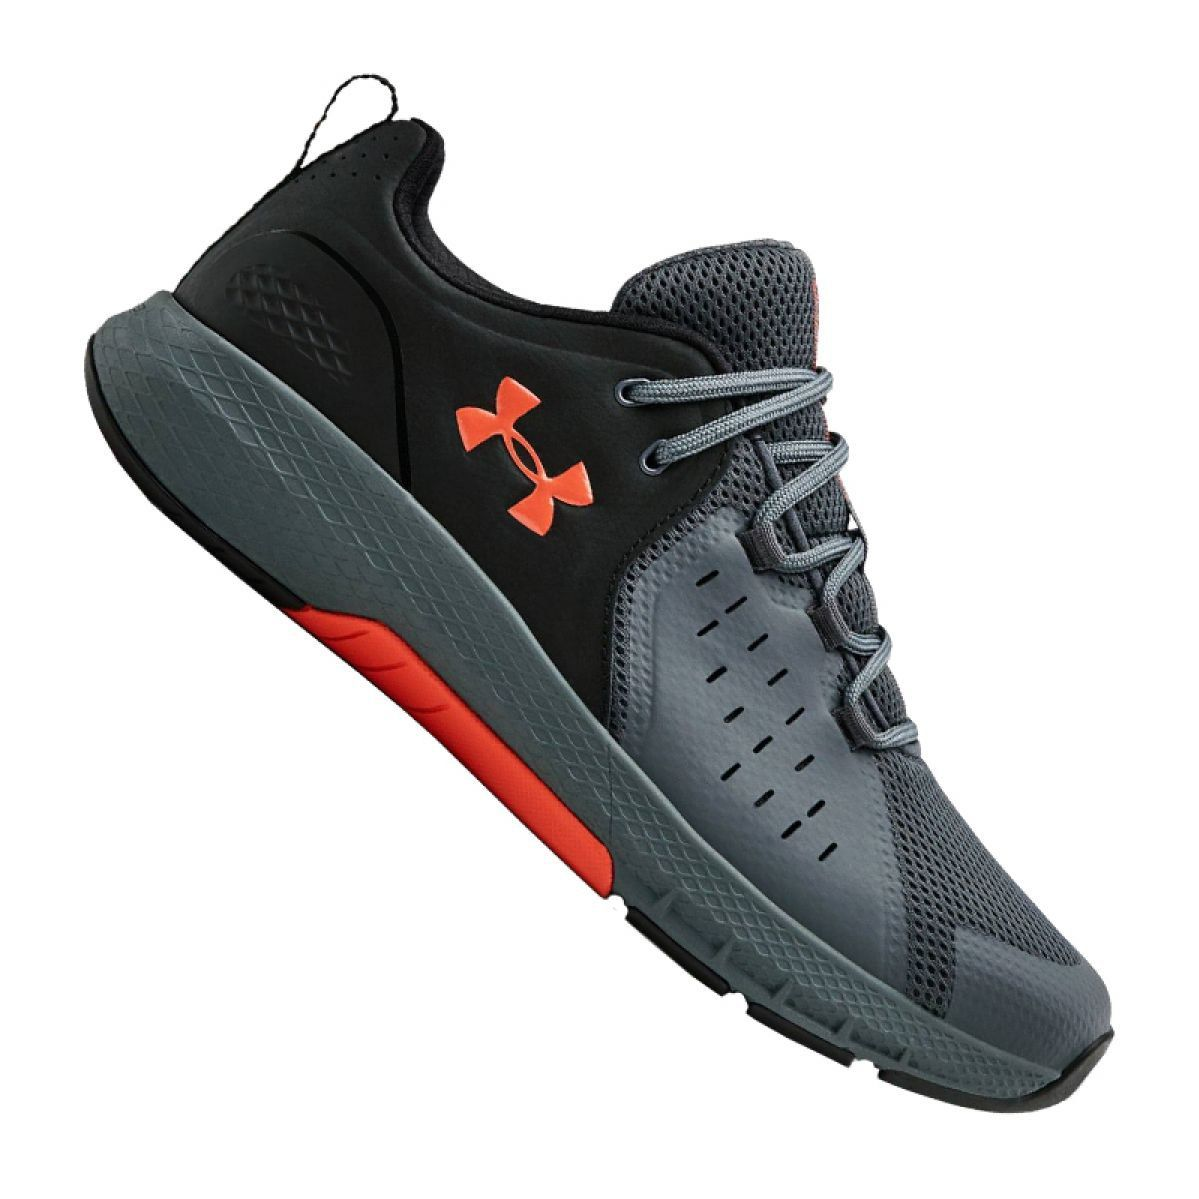 Buty Treningowe Under Armour Charged Commit Tr 2 0 M 3022027 003 Czarne Szare